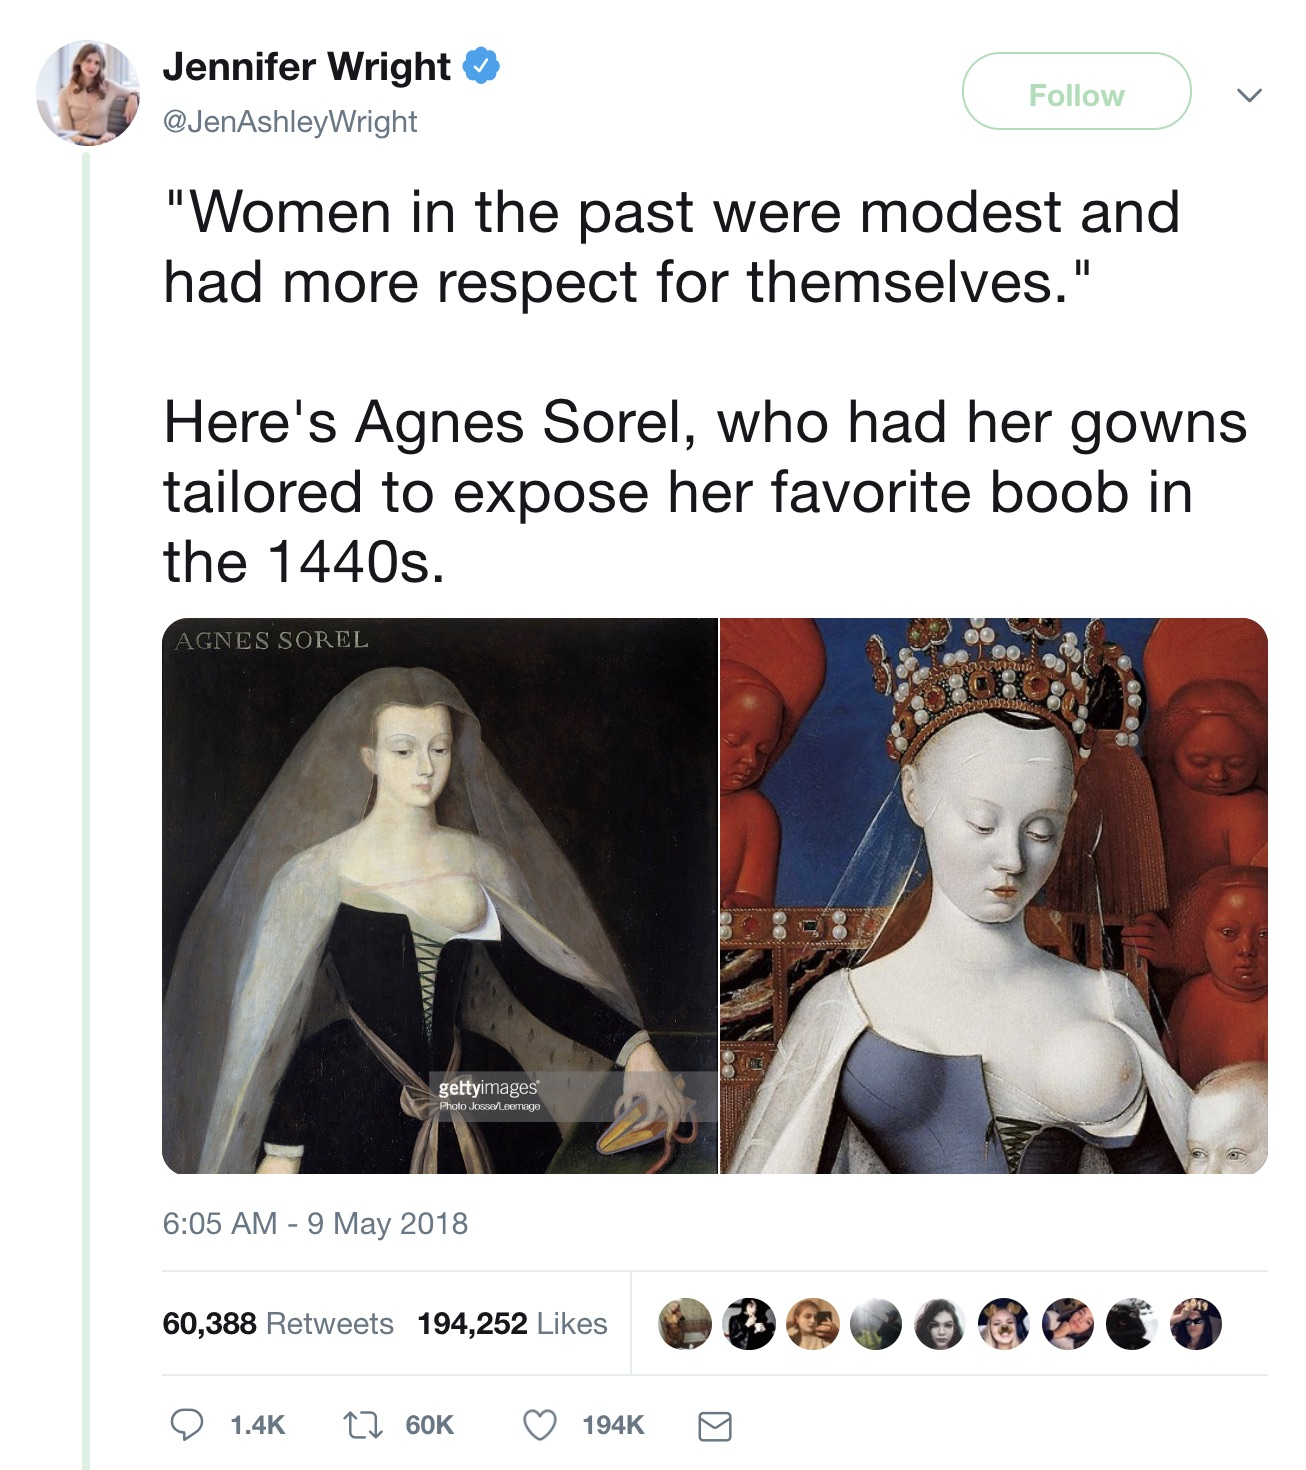 Jennifer_Wright_on_Twitter____Women_in_the_past_were_modest_and_had_more_respect_for_themselves___Here_s_Agnes_Sorel__who_had_her_gowns_tailored_to_expose_her_favorite_boob_in_the_1440s